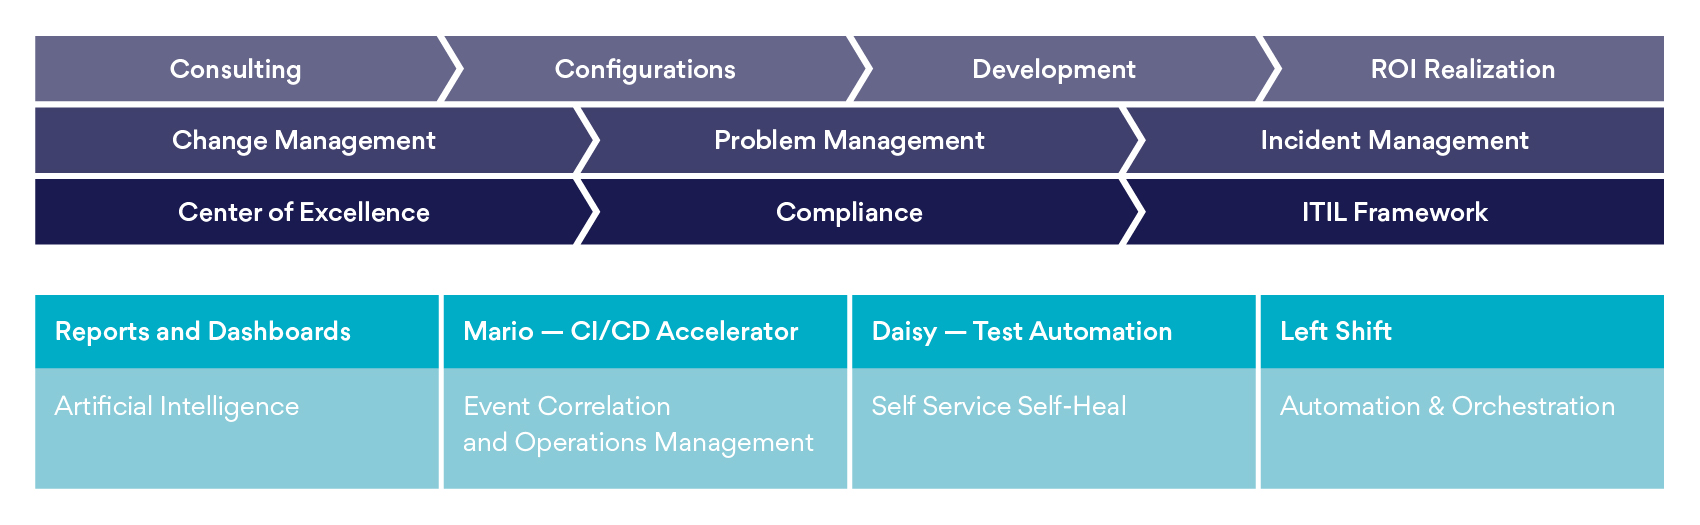 Operating Model - Salesforce Managed Services